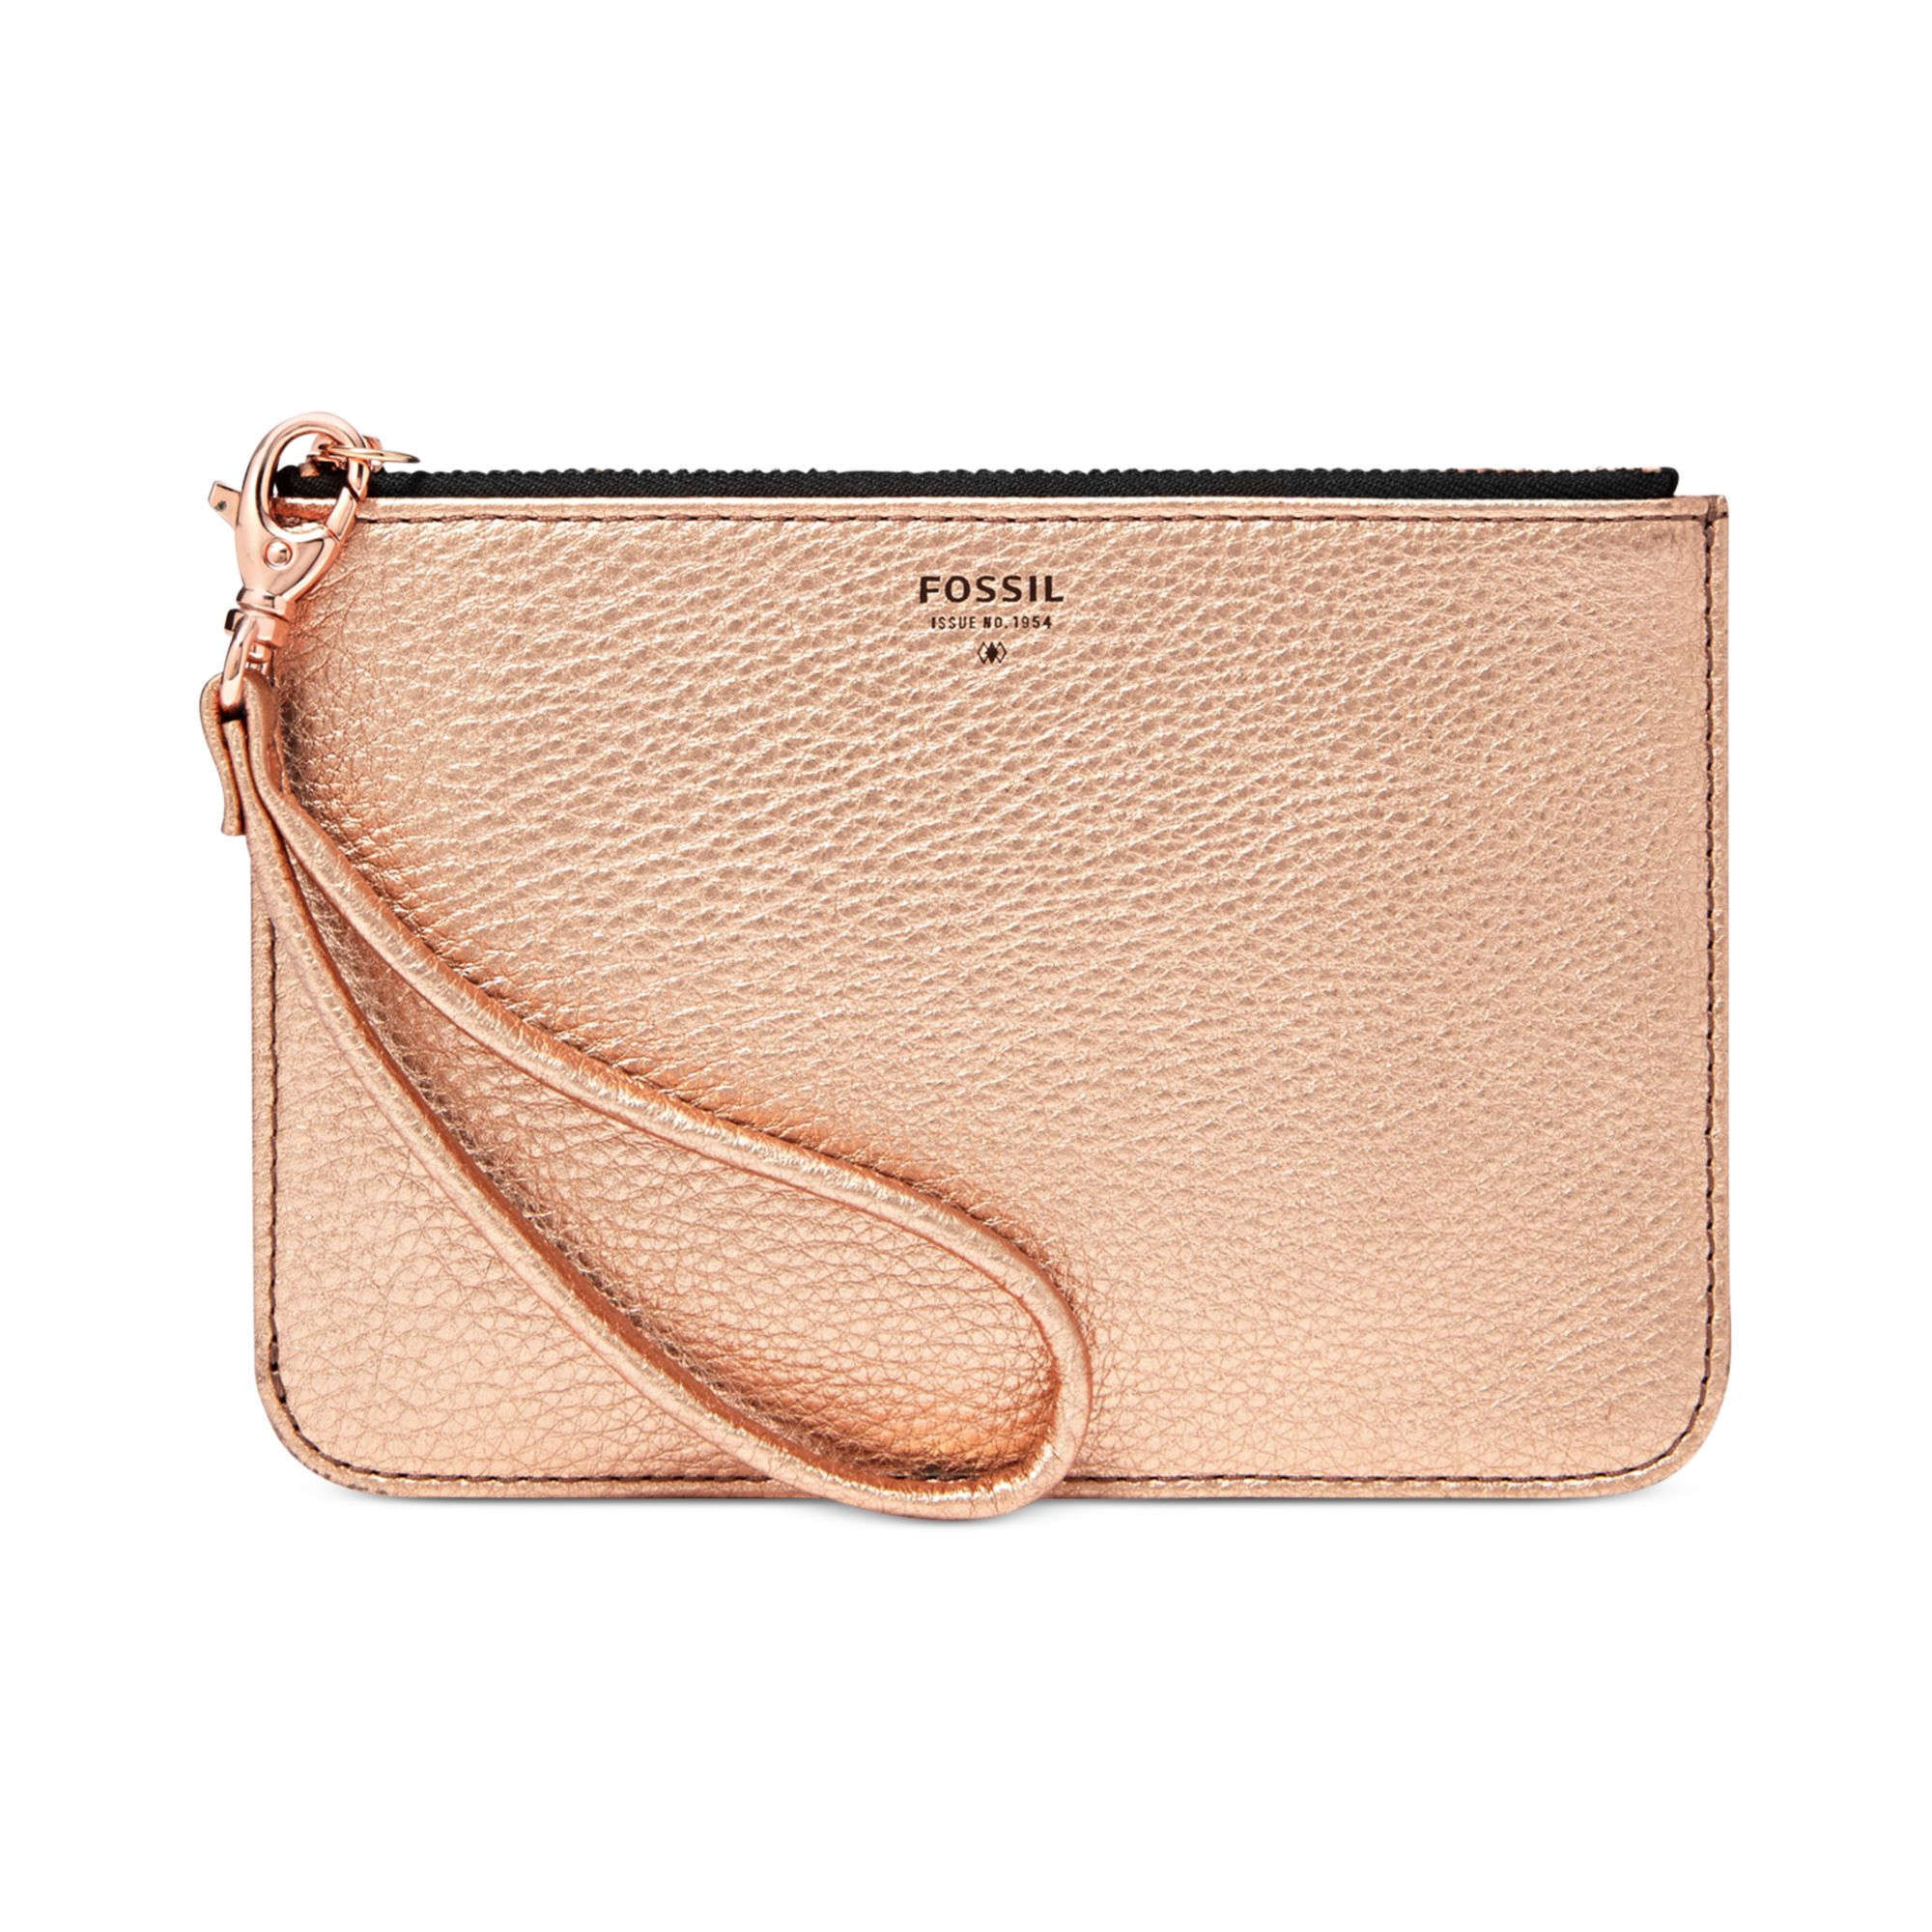 f9f34094b56 Fossil Metallic Leather Small Zip Pouch